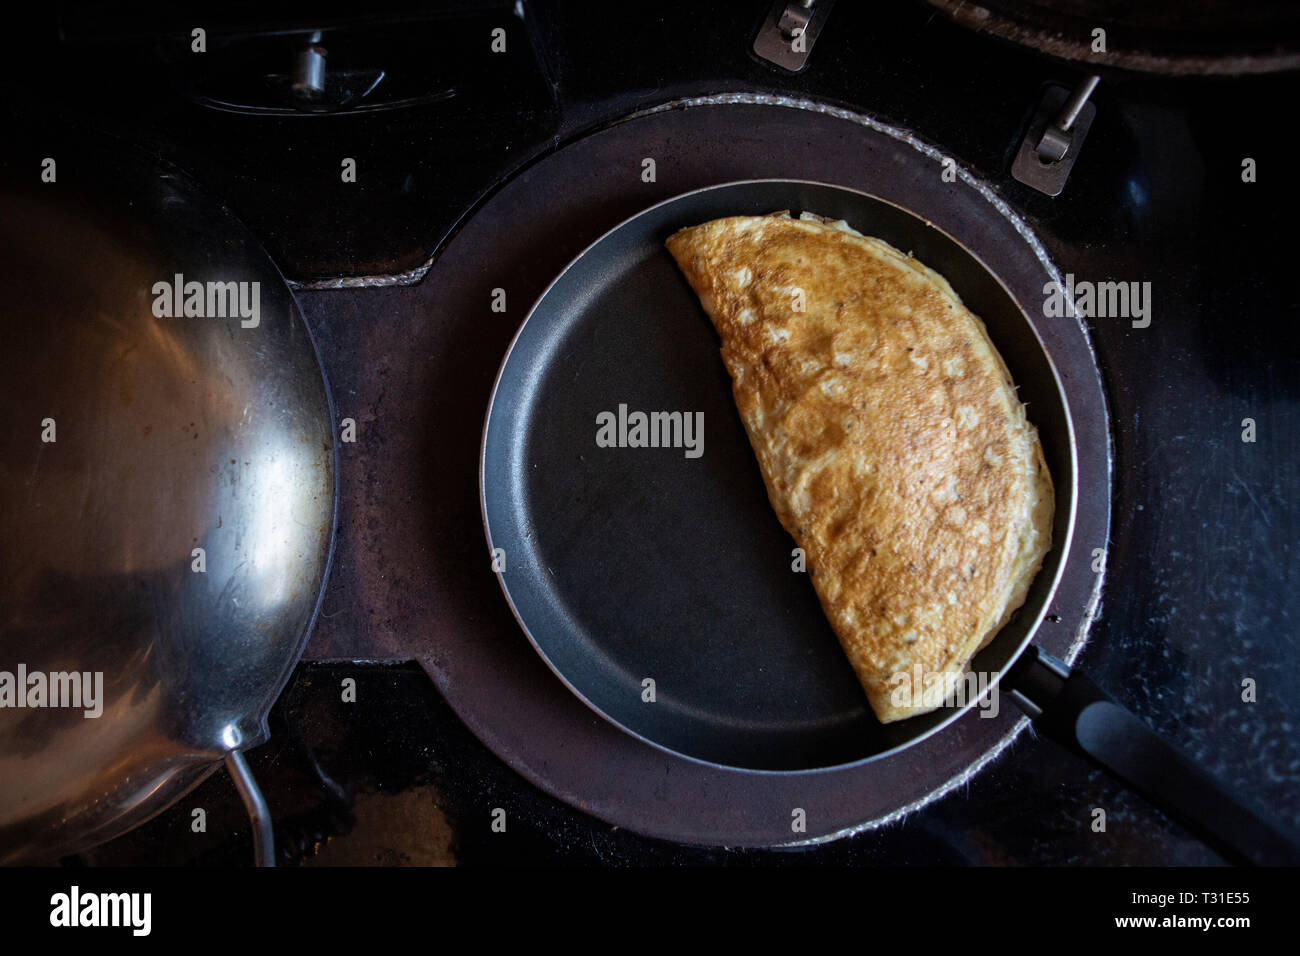 omelette cooking on a stove cooker - Stock Image